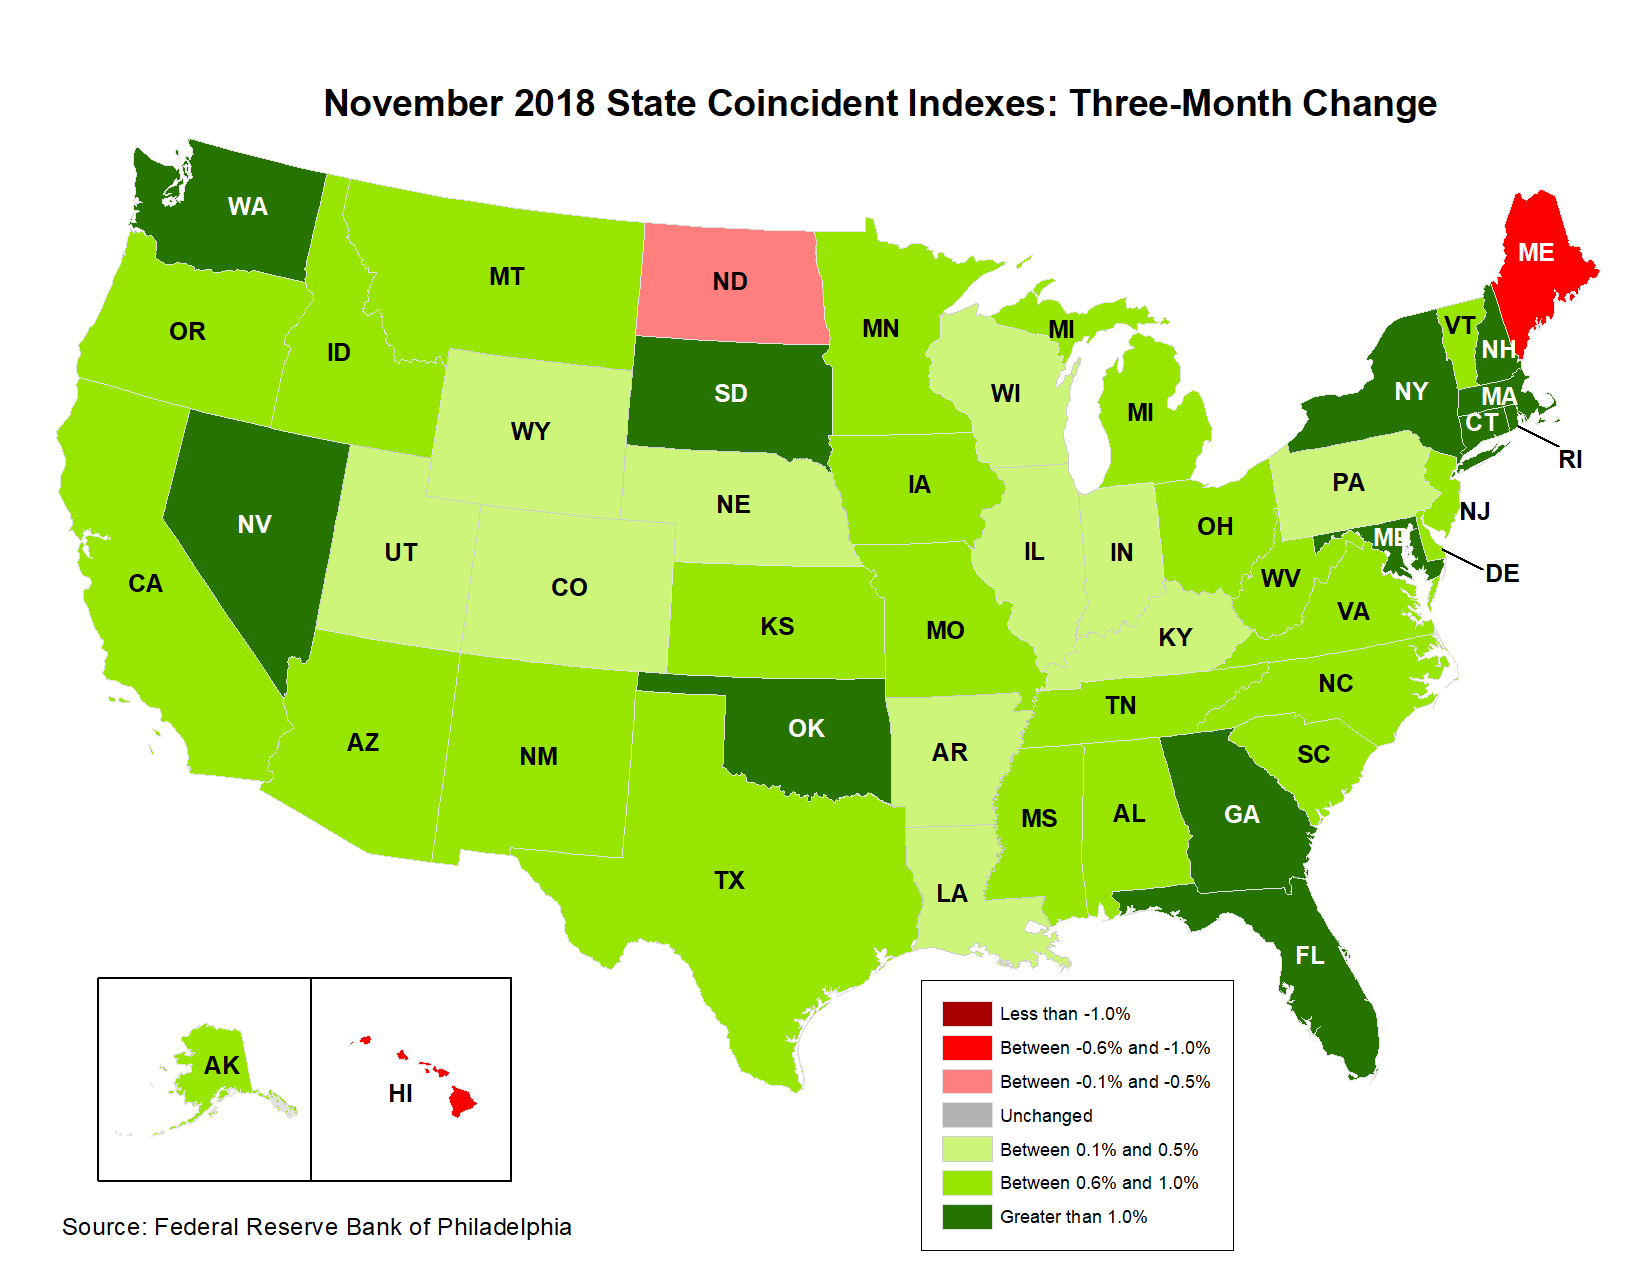 Map of the U.S. showing the State Coincident Indexes Three-Month Change in November 2018